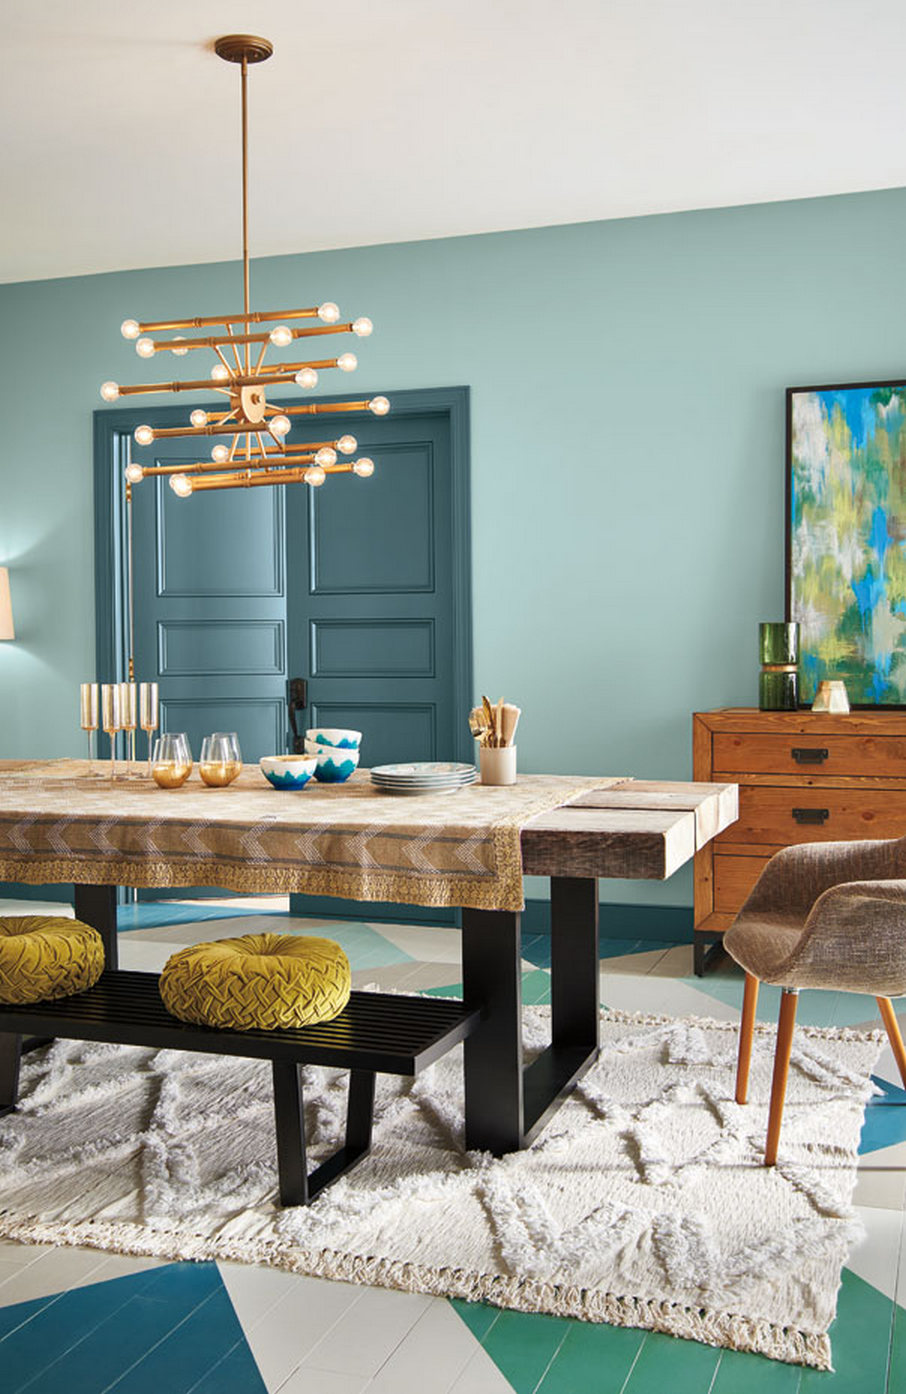 Soft Aqua Walls Are Layered With Deep Blue Green Trim Modern Furnishings And Sparkling Gold Accents